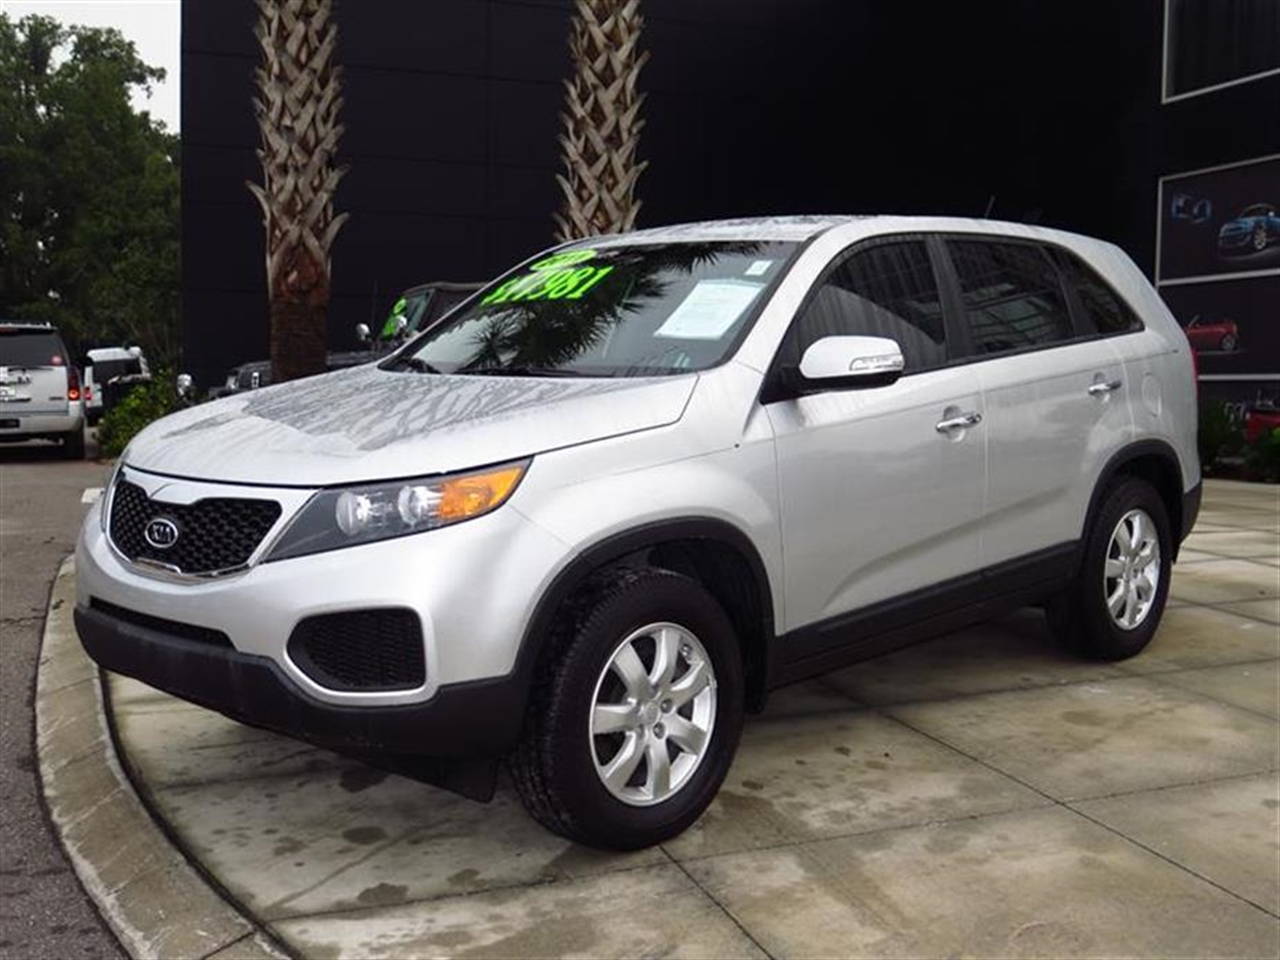 2011 KIA SORENTO 2WD 4dr I4 LX 49623 miles Air conditioning Dual illuminated visor vanity mirrors